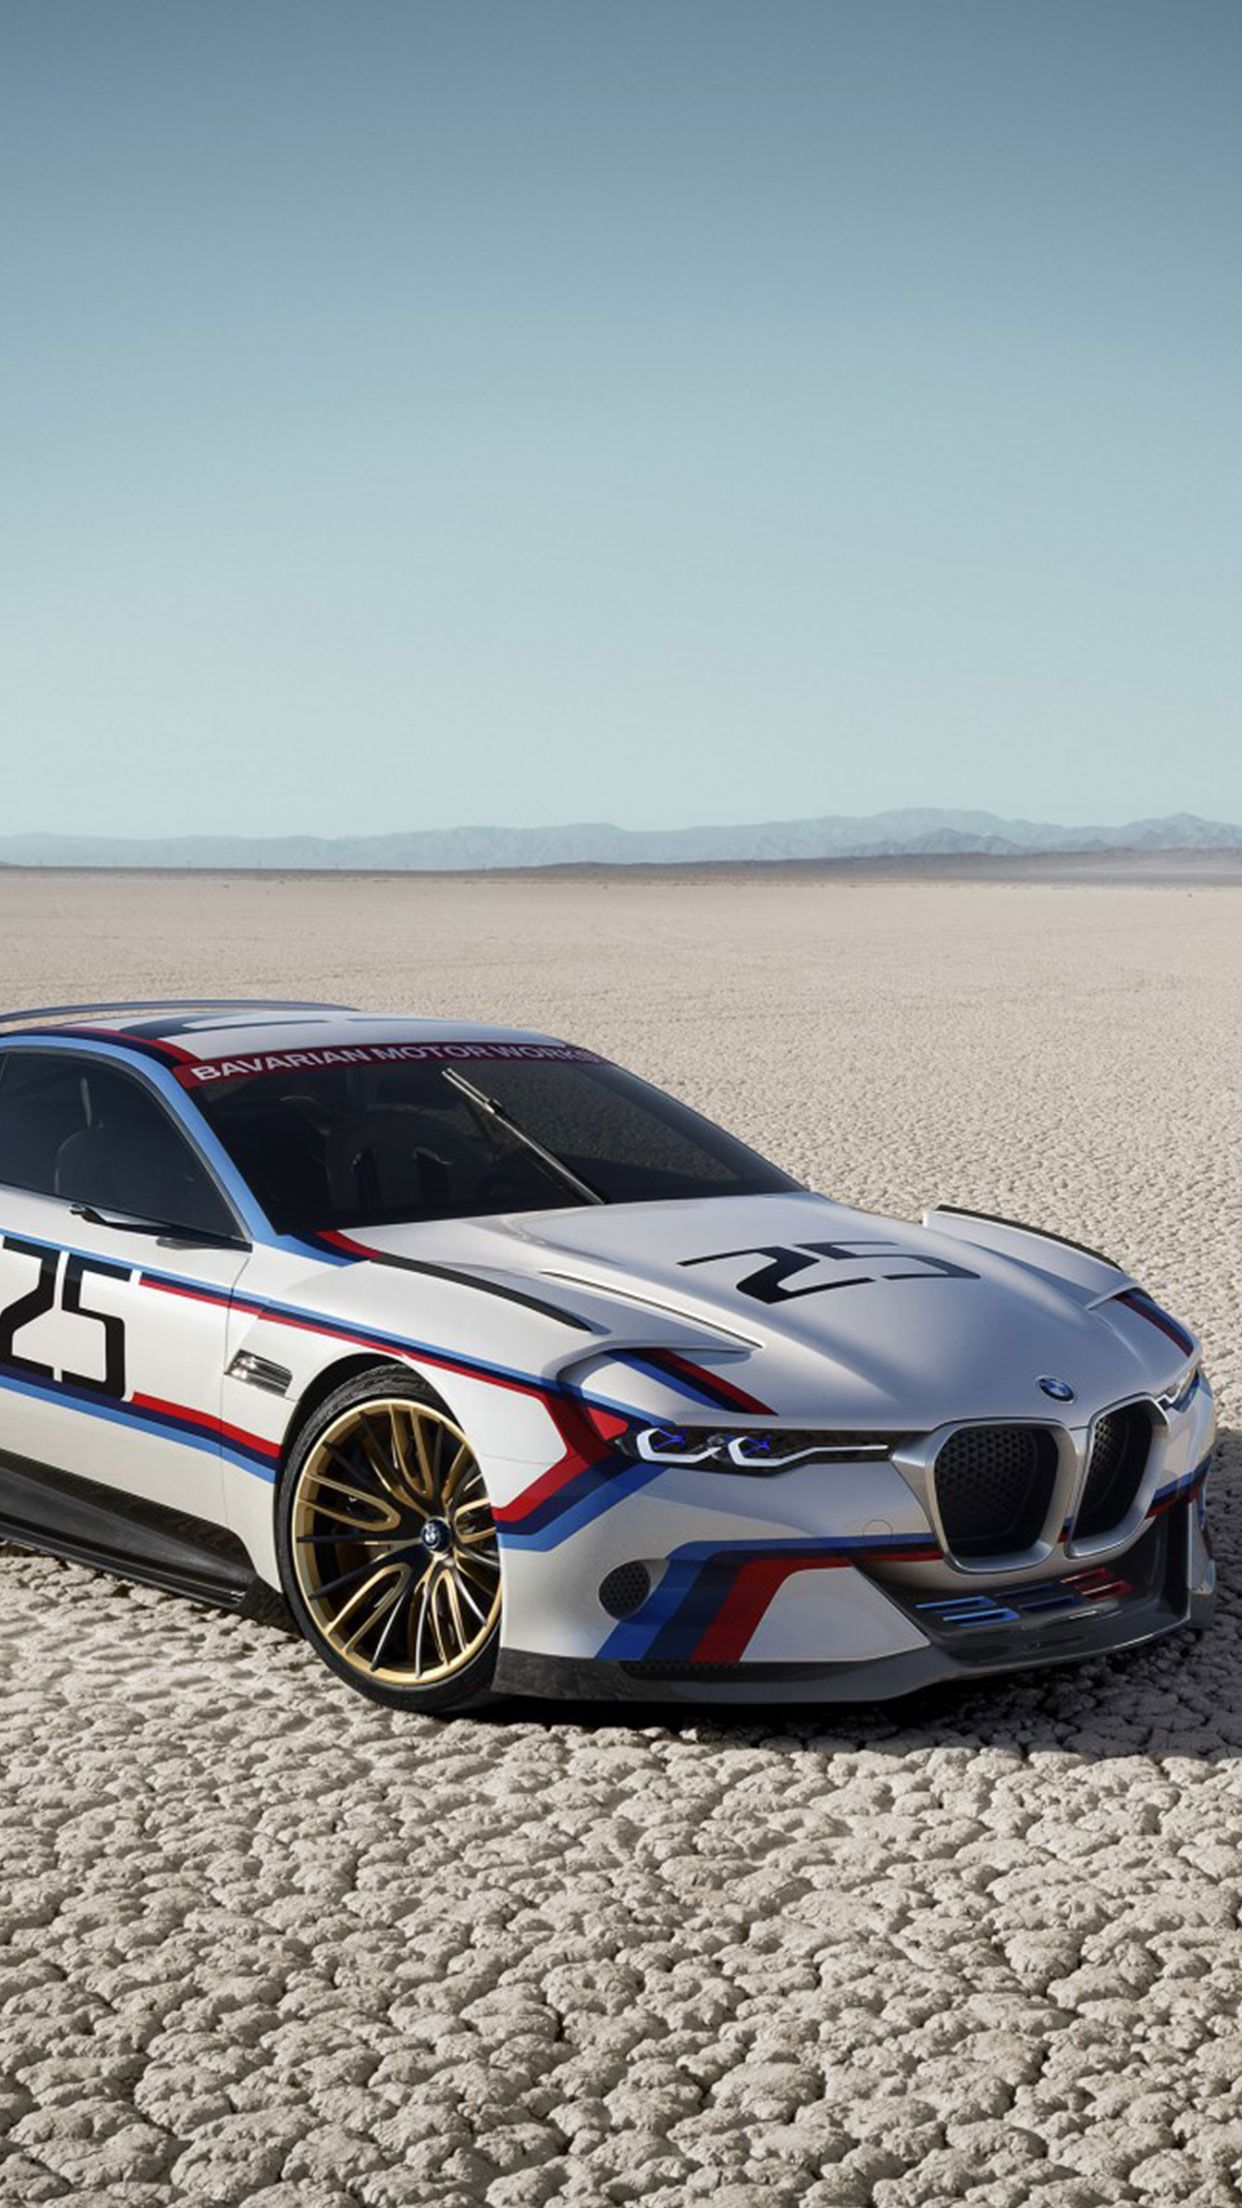 Bmw 3 0 Csl Car Wallpaper Iphone Android Car Bmw More Like This At Wallzapp Com Instagram Foto S Bmw Instagram Foto